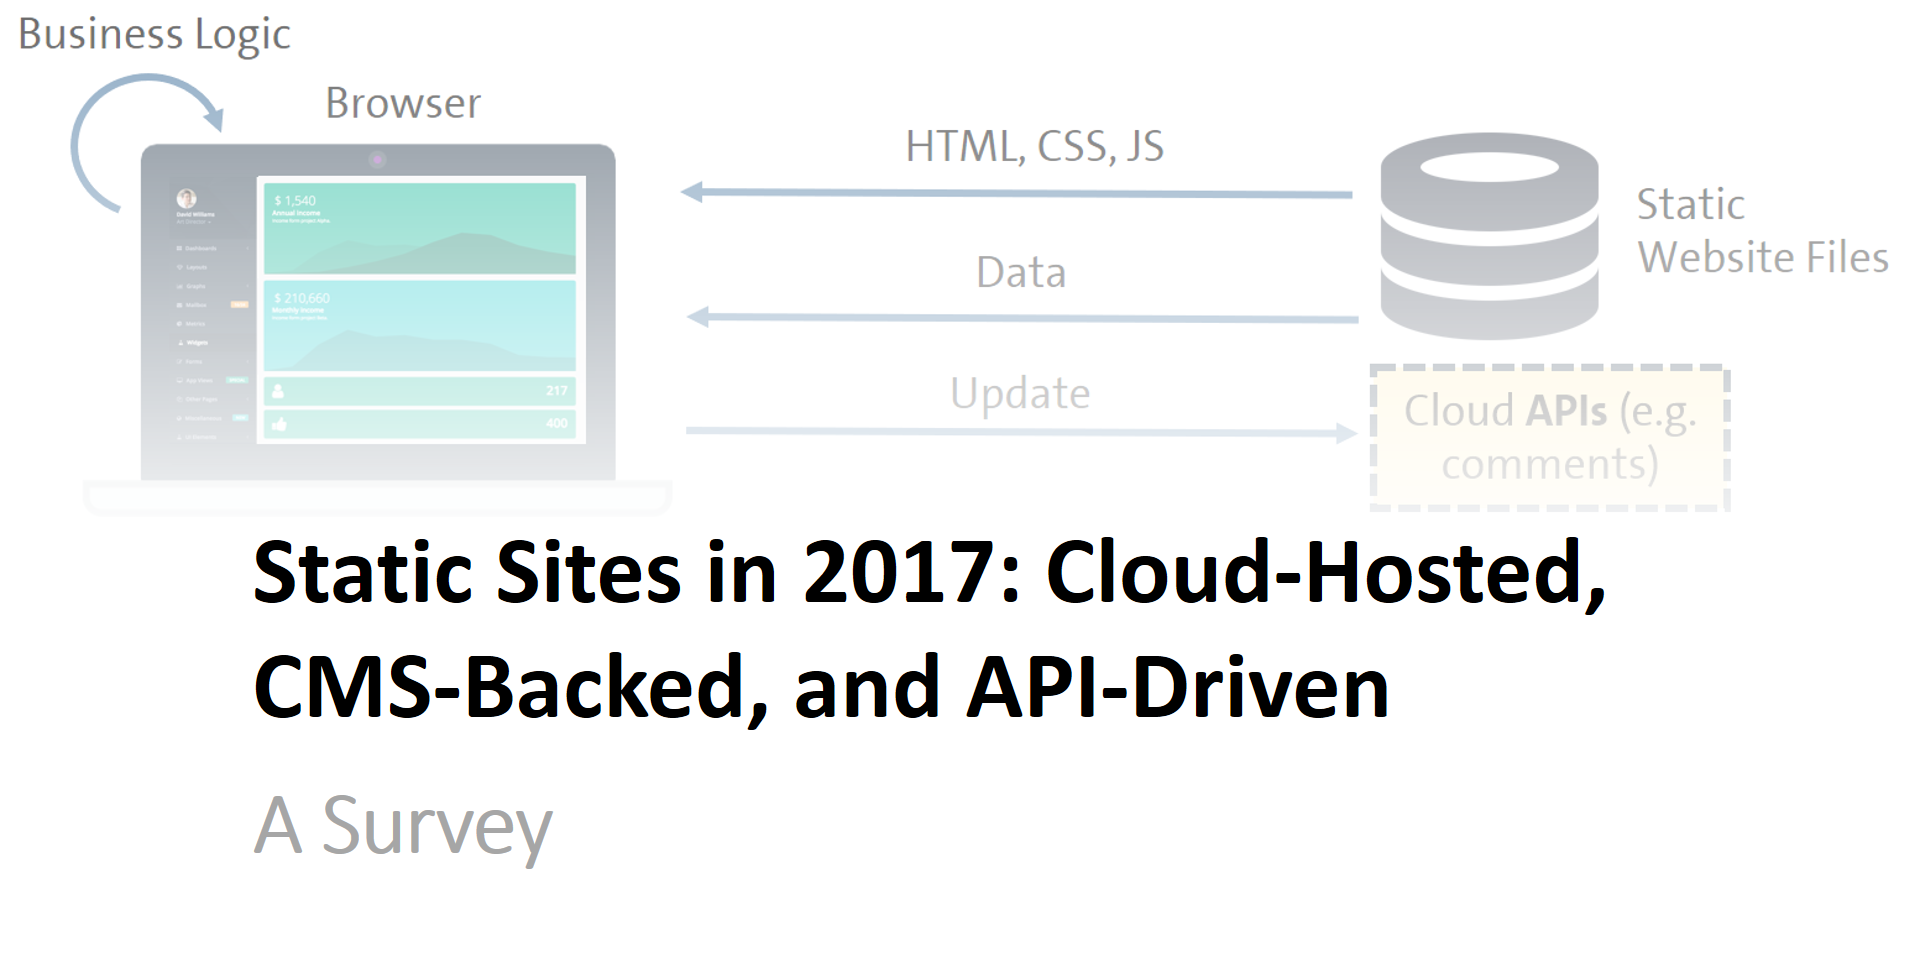 Building Static Sites in 2017: Cloud-Hosted, CMS-Backed, and API-Driven